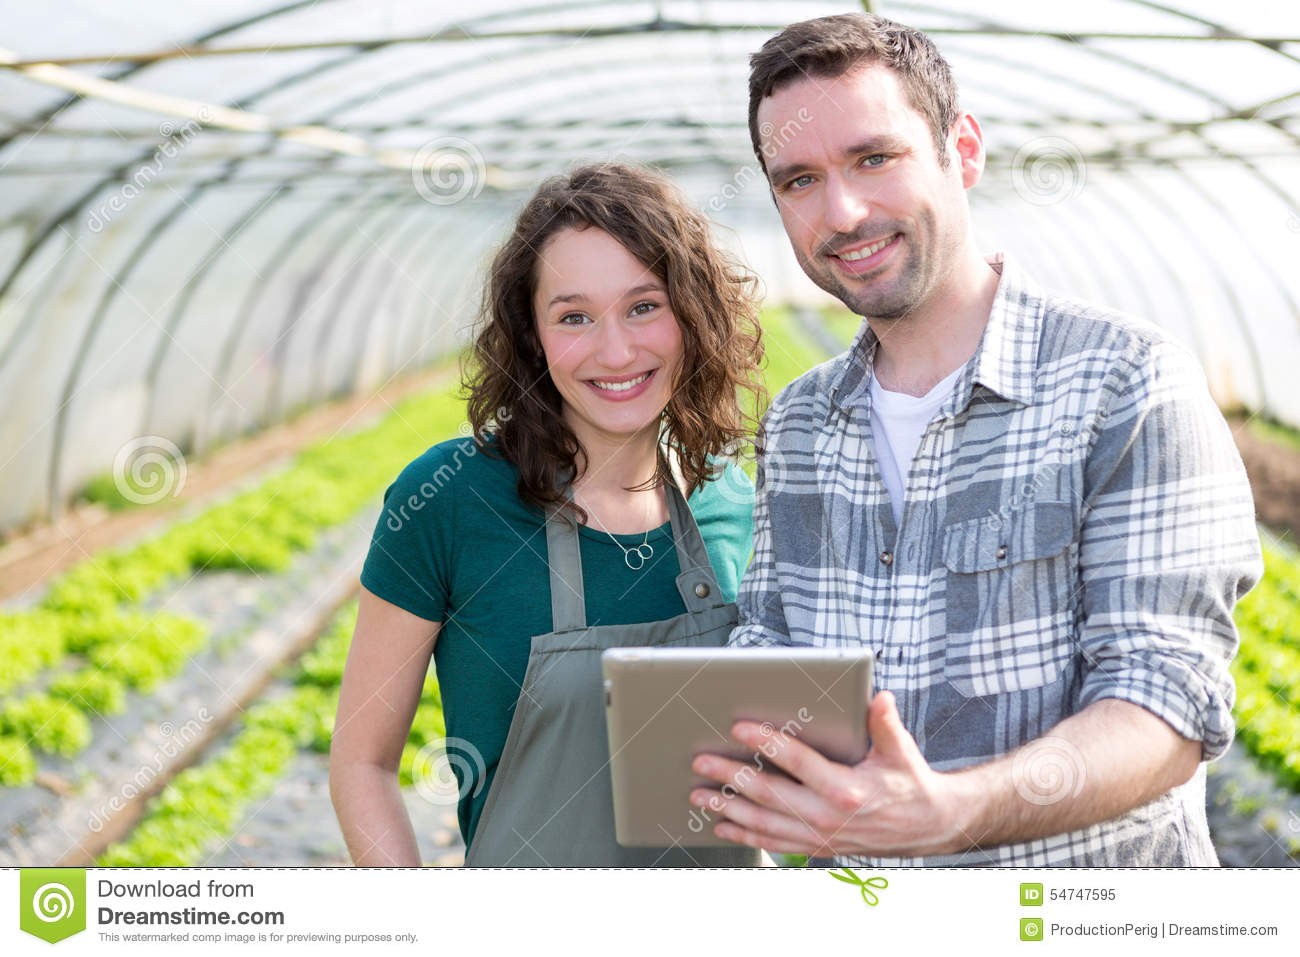 Farmers watching stats on tablet